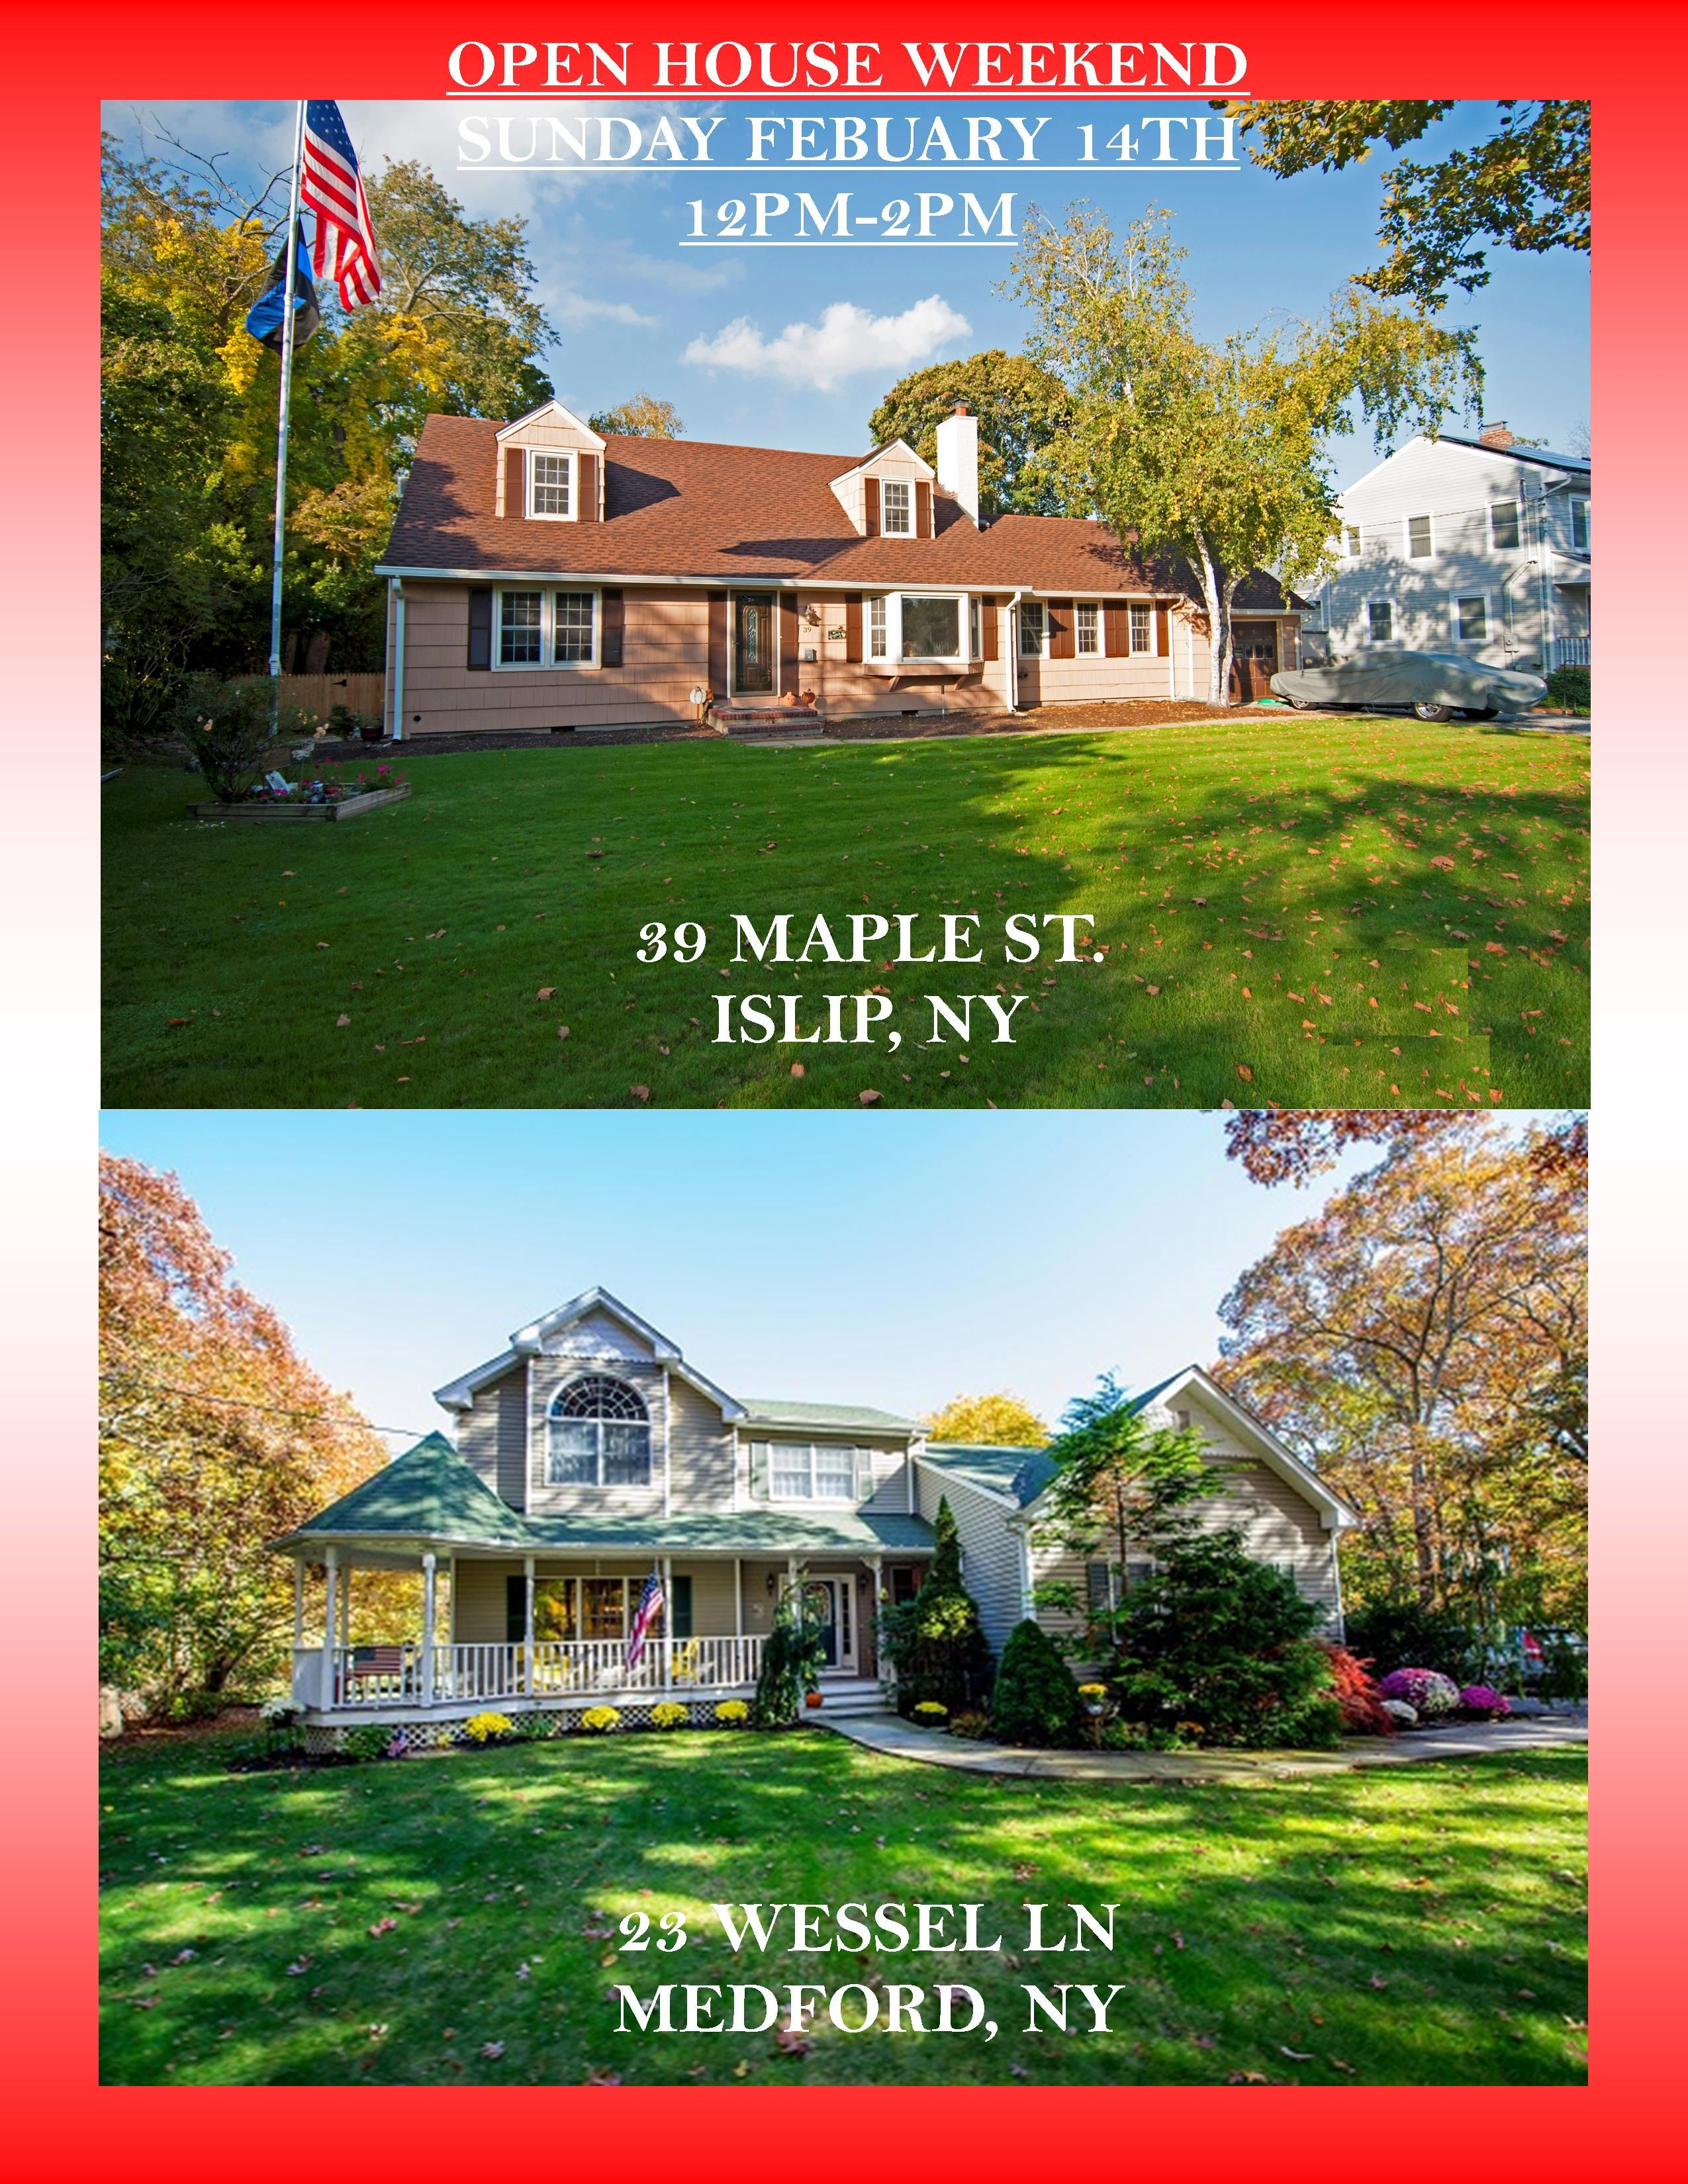 BUNDLE UP AND JOIN US FOR THIS  VALENTINES DAY OPEN HOUSE!! SUNDAY FEBRUARY 14TH 12PM-2PM FALL IN LOVE WITH YOUR NEW HOME!!  39 MAPLE ST http://www.obeo.com/1072396  23 WESSEL LN http://www.obeo.com/1076832